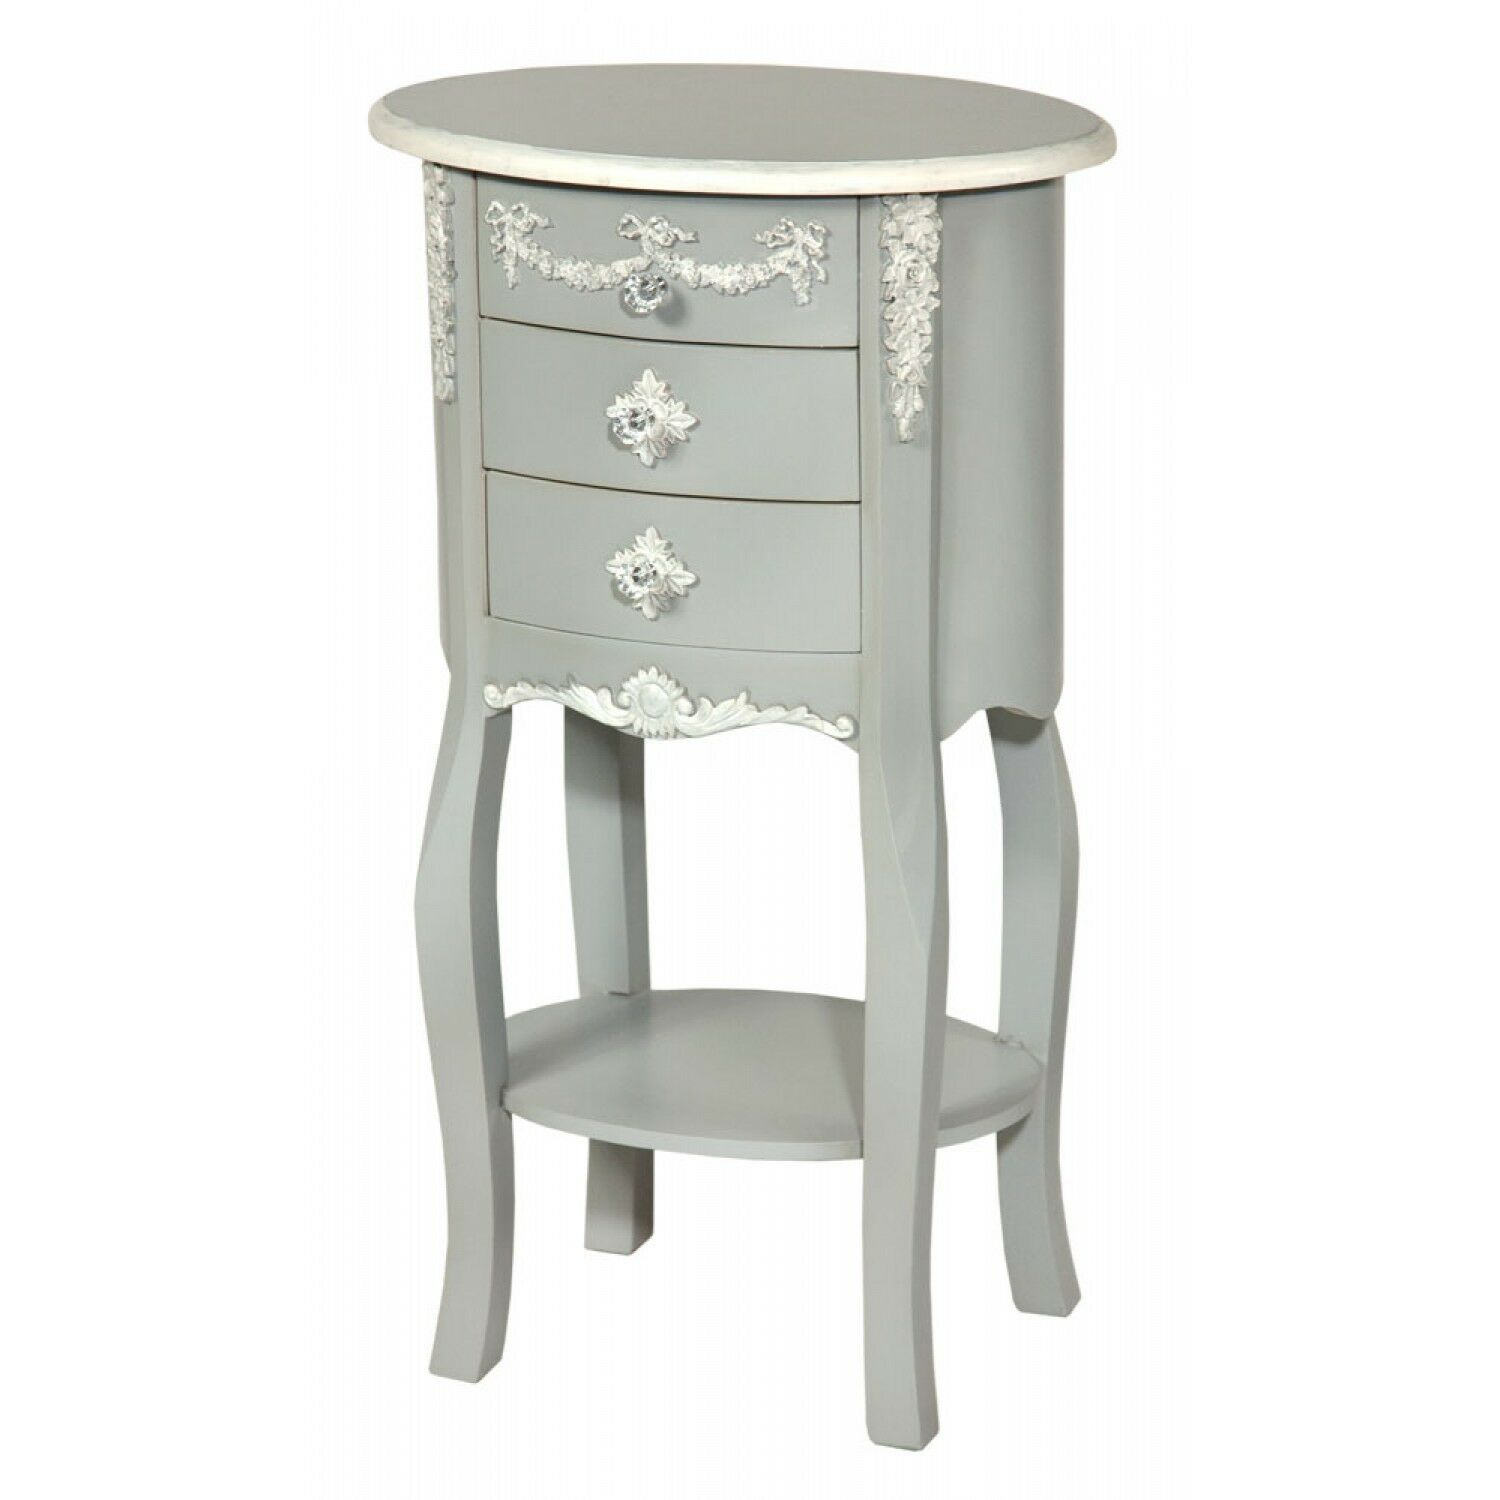 BOUDOIR ANTIQUE GREY WHITE FRENCH OVAL BEDSIDE LAMP SIDE TABLE CABINET (R10-1088